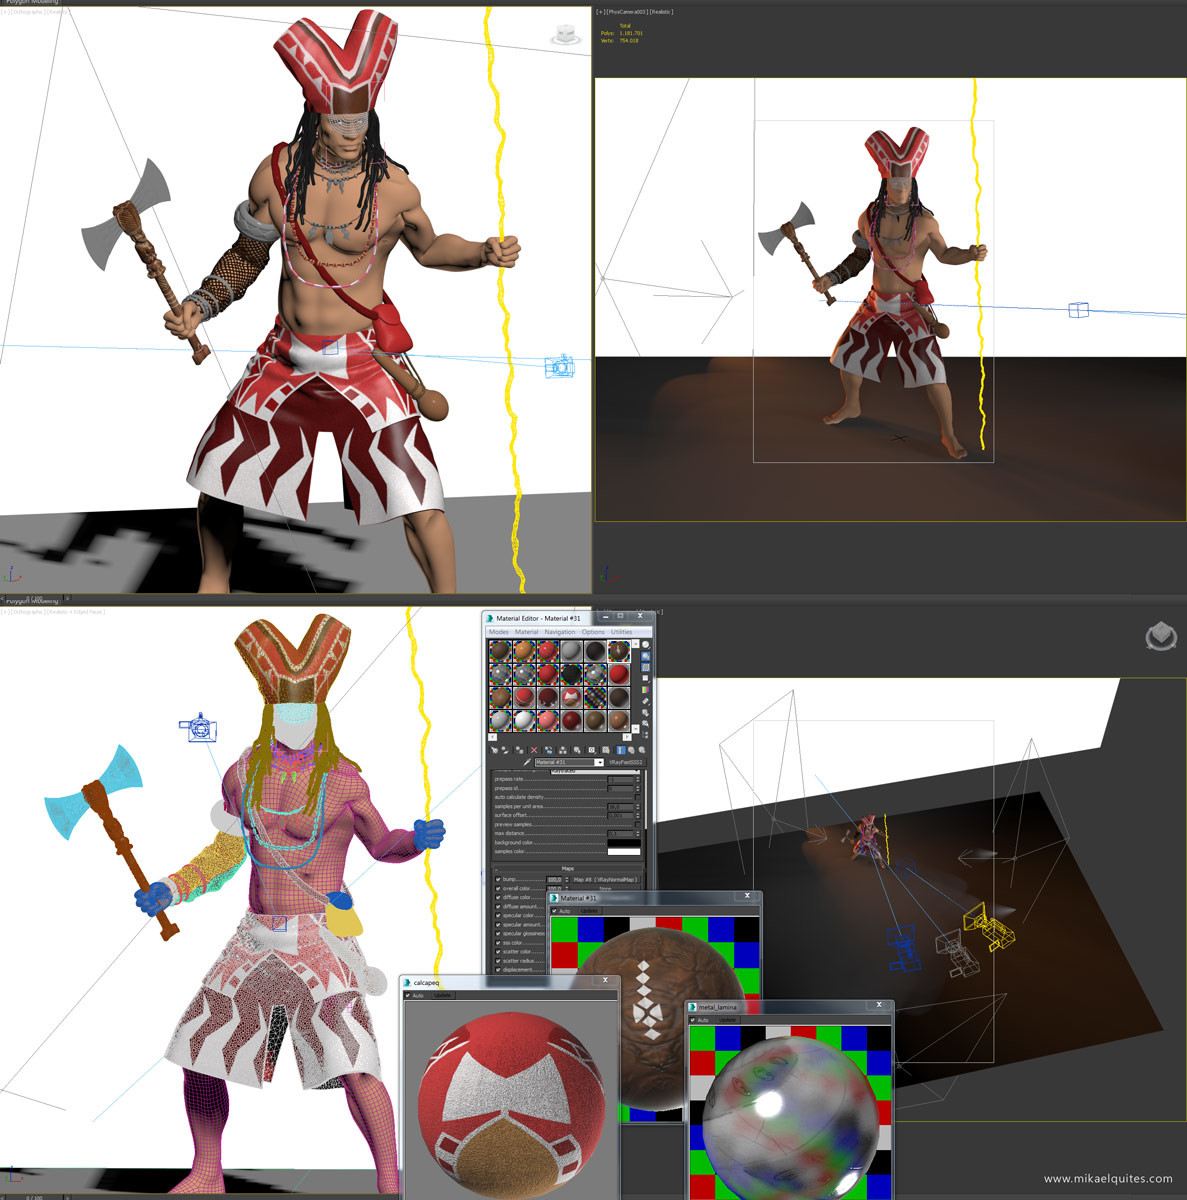 3ds Max viewports, showing some shaders and lighting setup